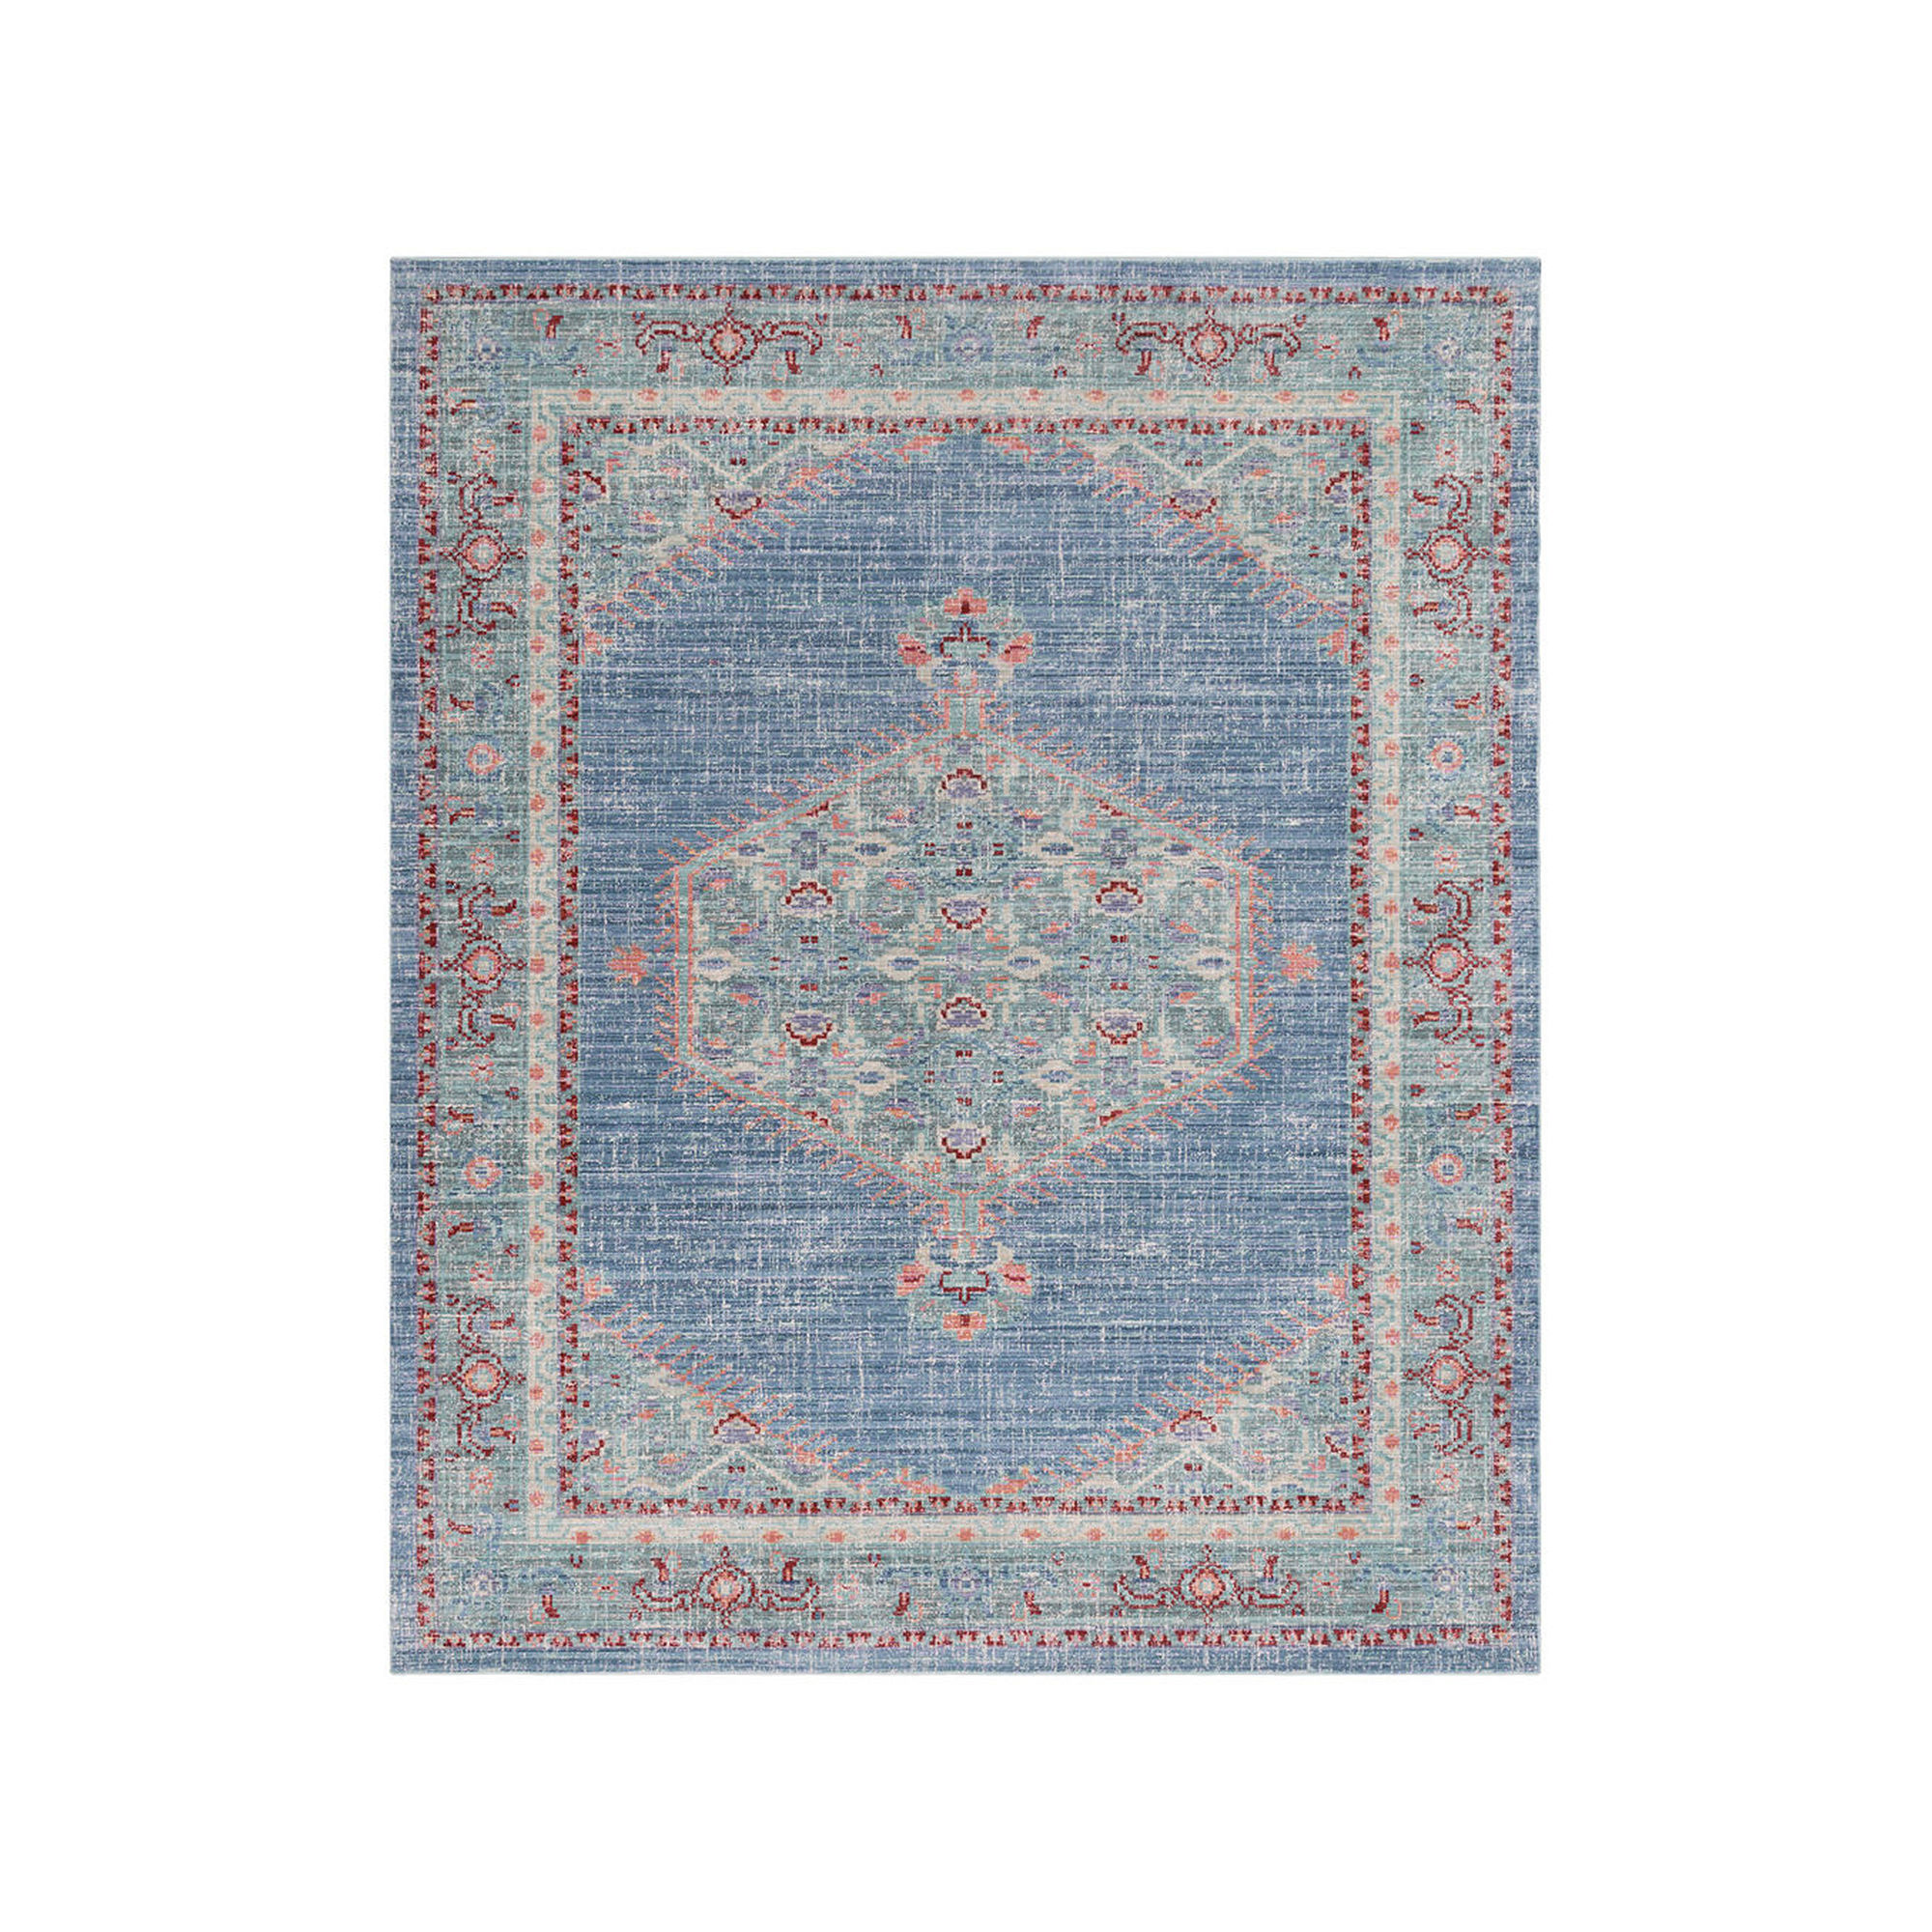 Decor 140 Eora Rectangular Rugs